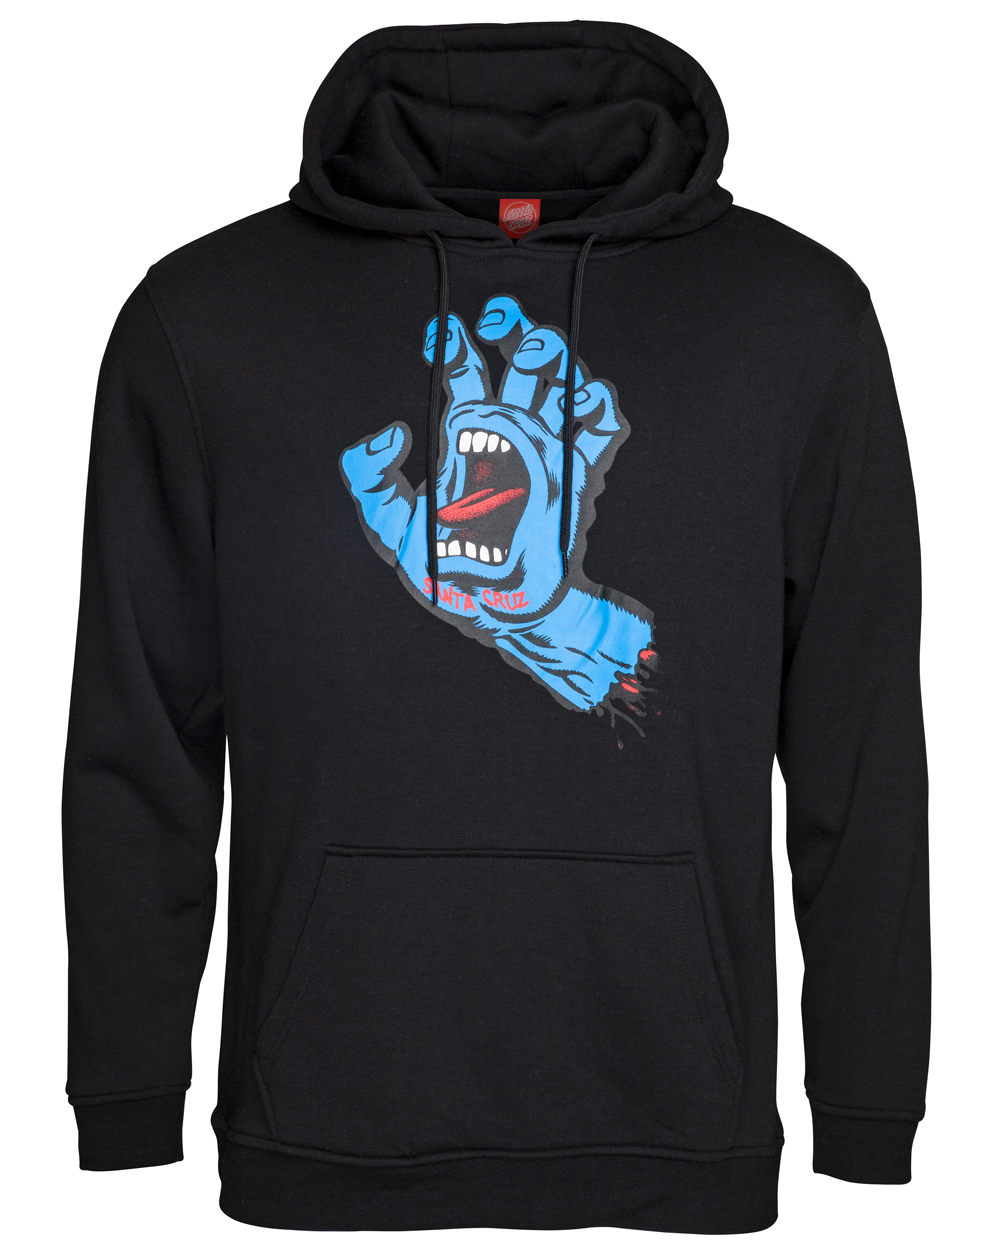 Santa Cruz Men's Hoodie Screaming Hand Black